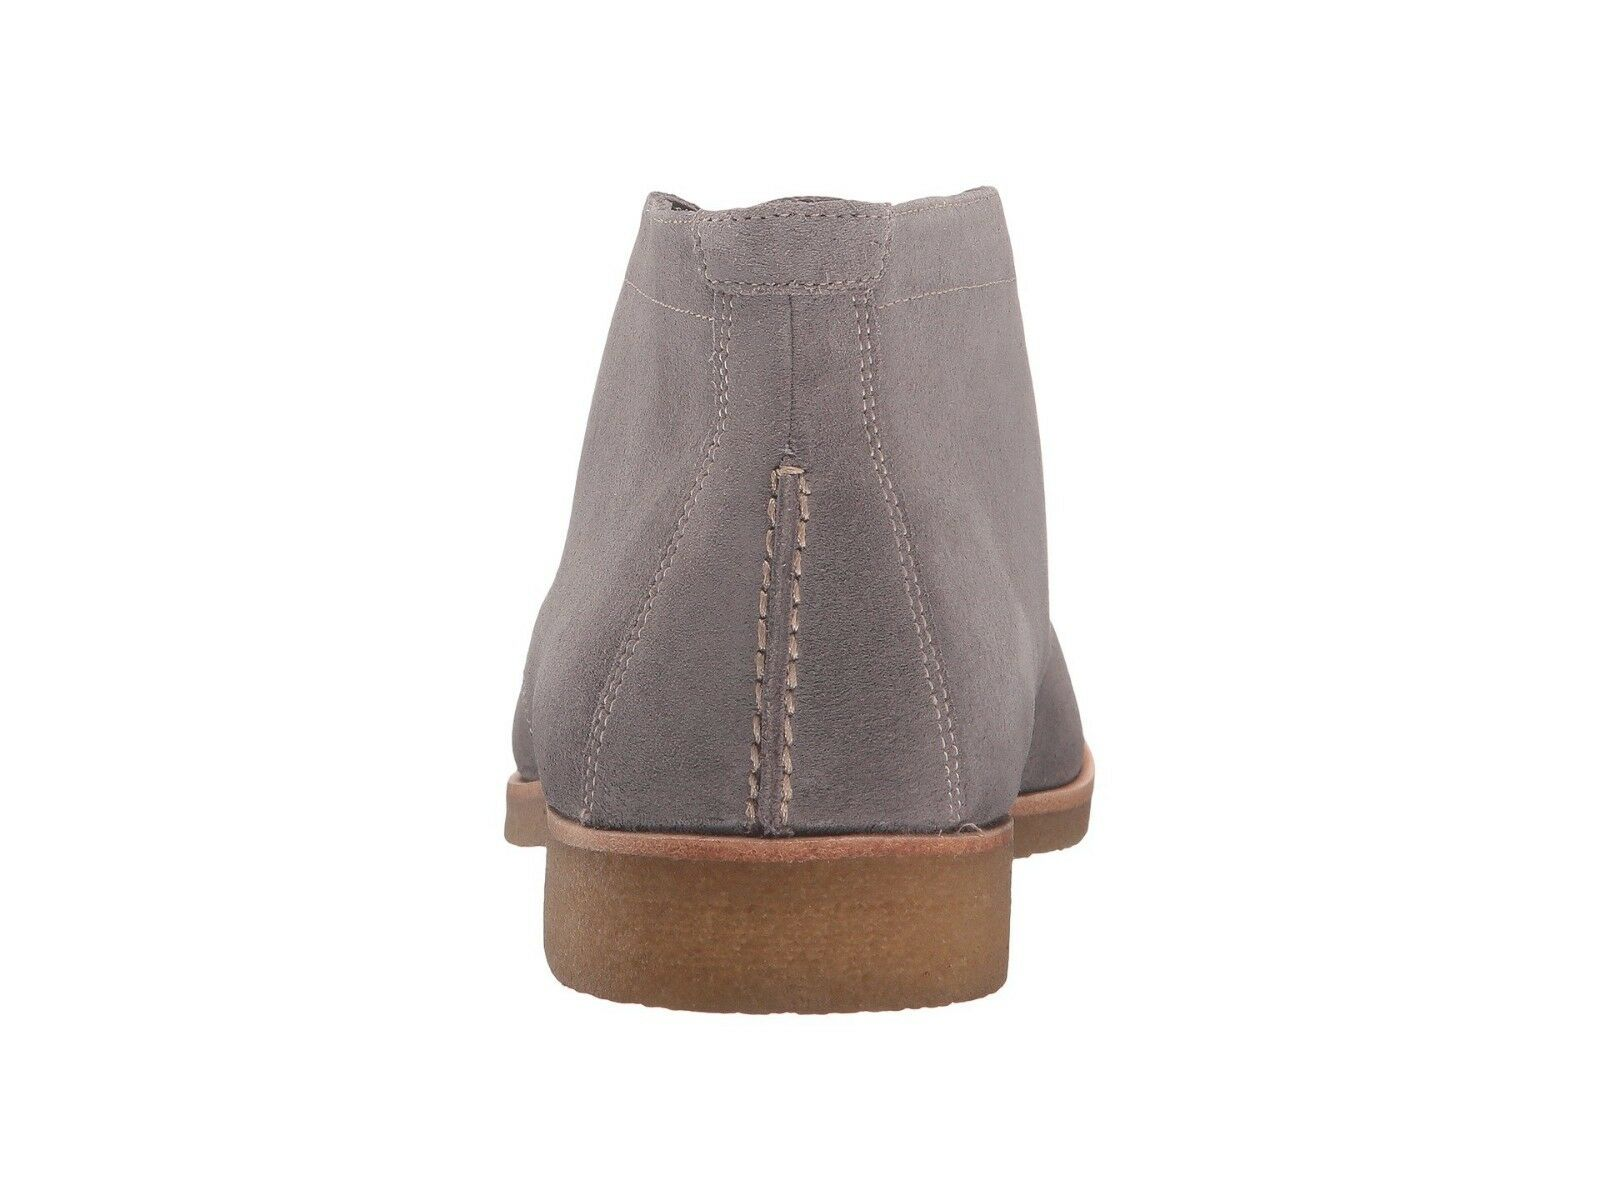 JOHNSTON & MURPHY Damens's HAYDEN CHUKKA Stiefel Lace Up 8 Ankle Stiefel GREY Suede 8 Up M 9e8689